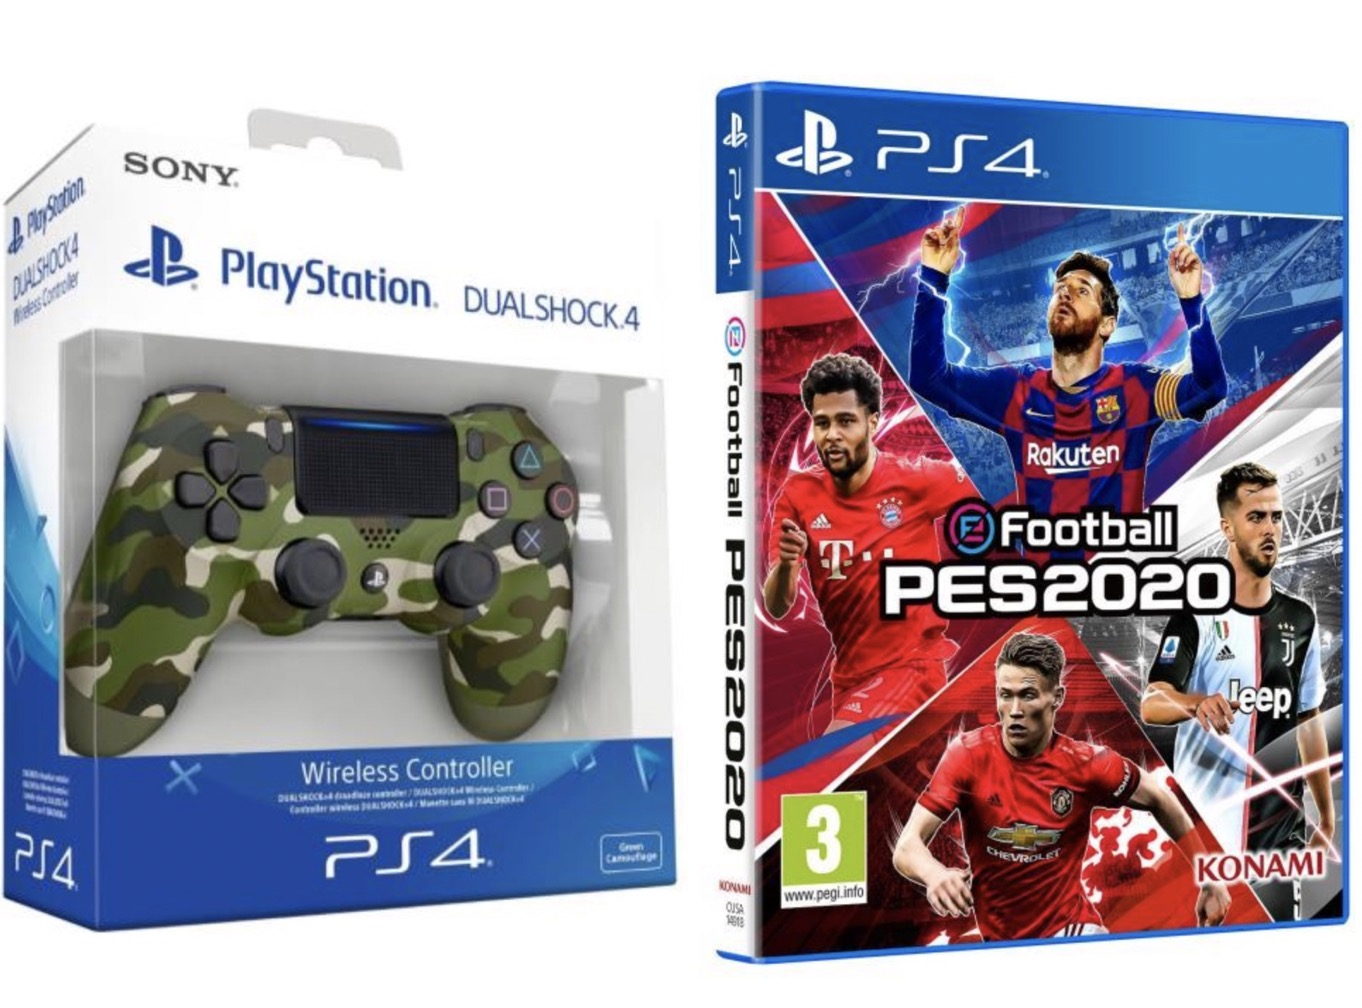 Code promo Fnac : Jeu PS4 eFootball PES 2020 + manette PS4 Sony Dual Shock 4 Green Camo pour 64,99€